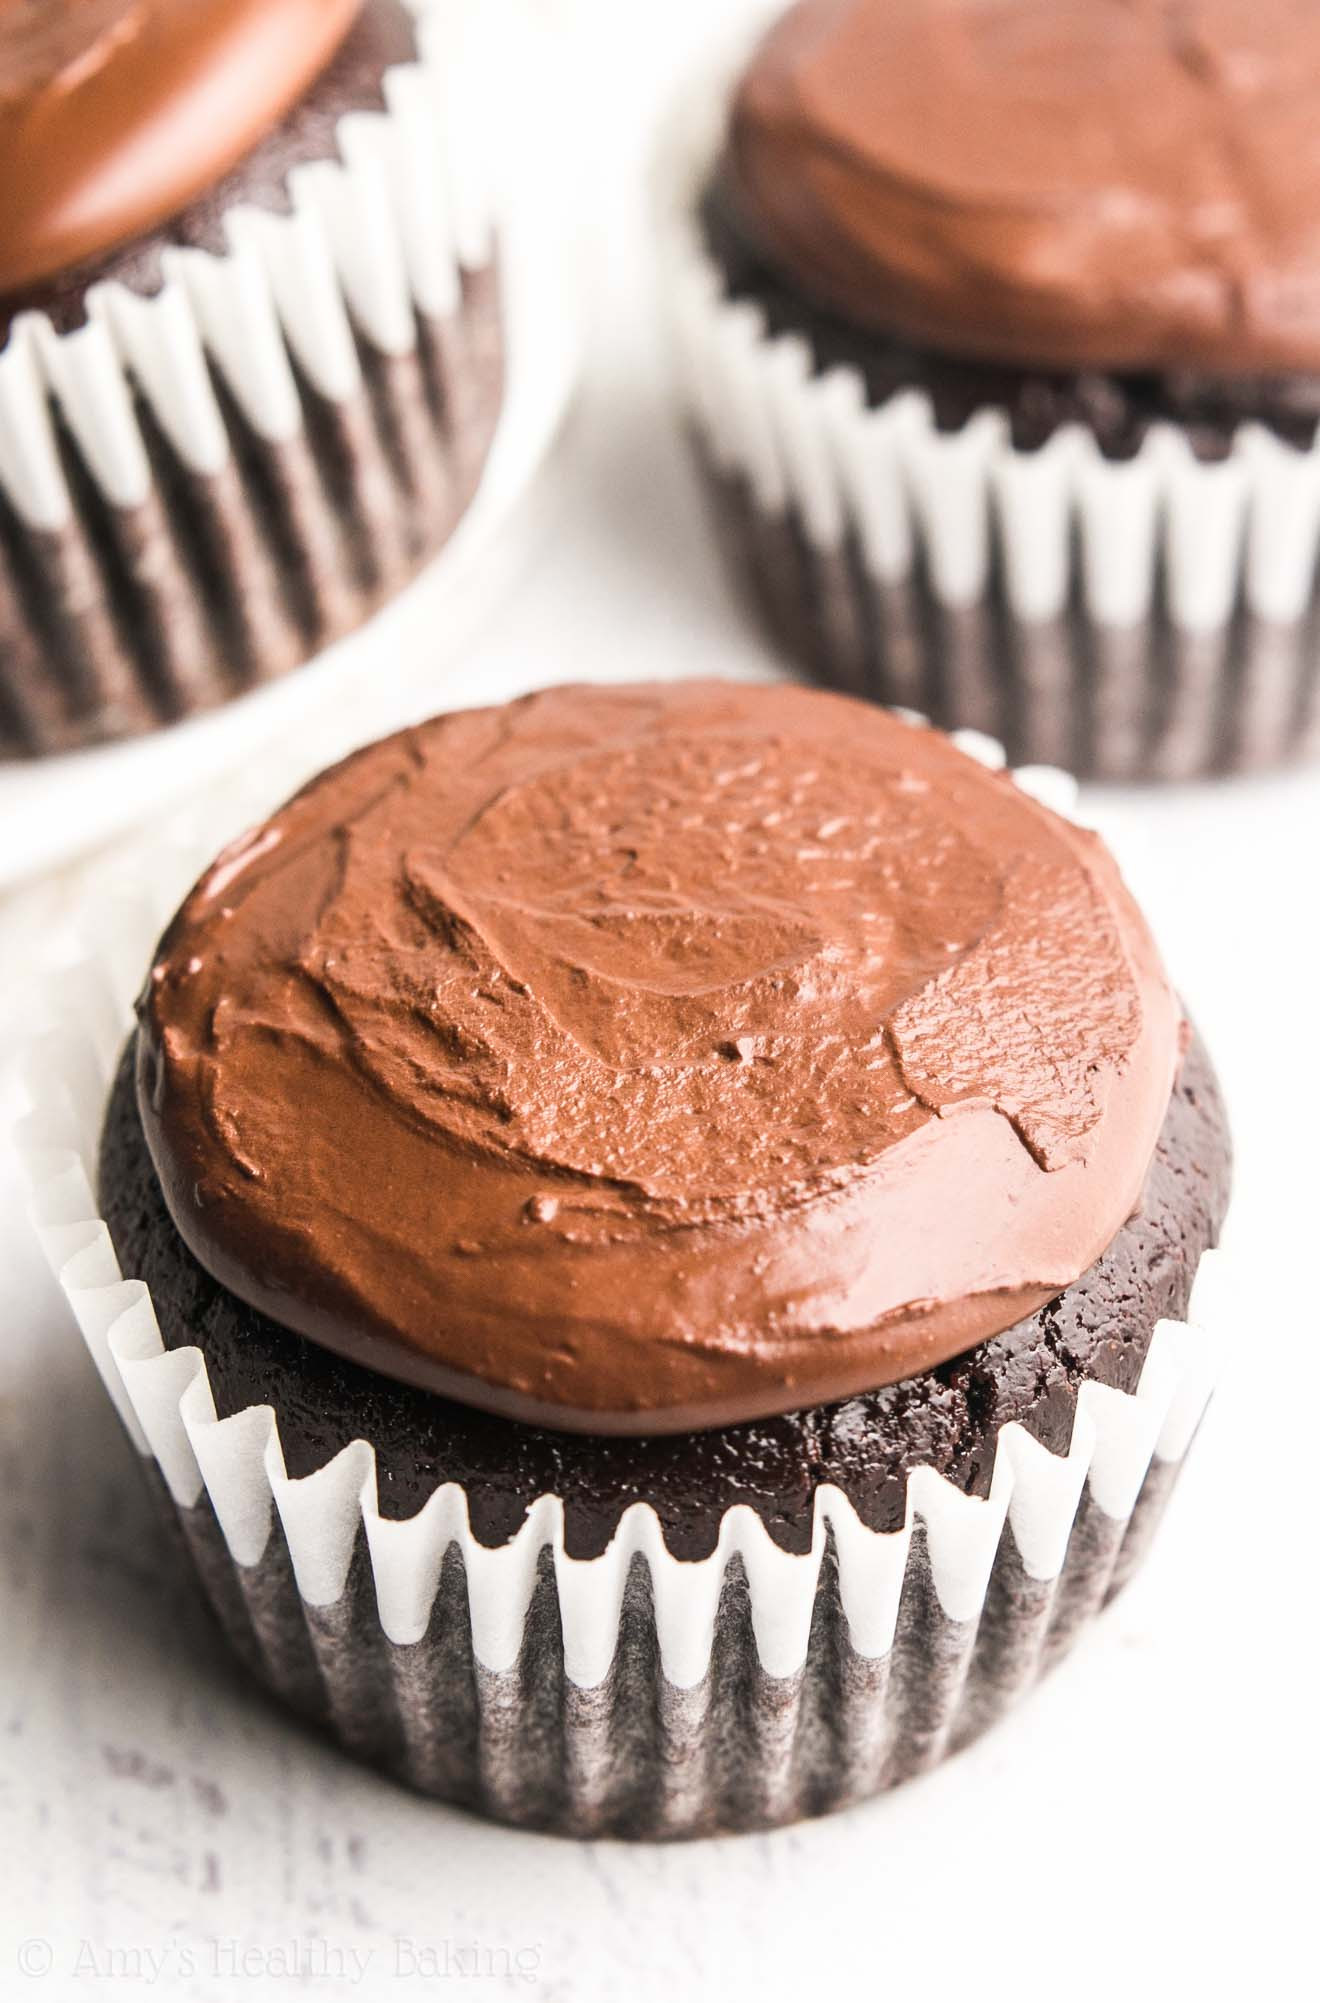 Healthy Cupcakes For Kids  The Ultimate Healthy Dark Chocolate Cupcakes